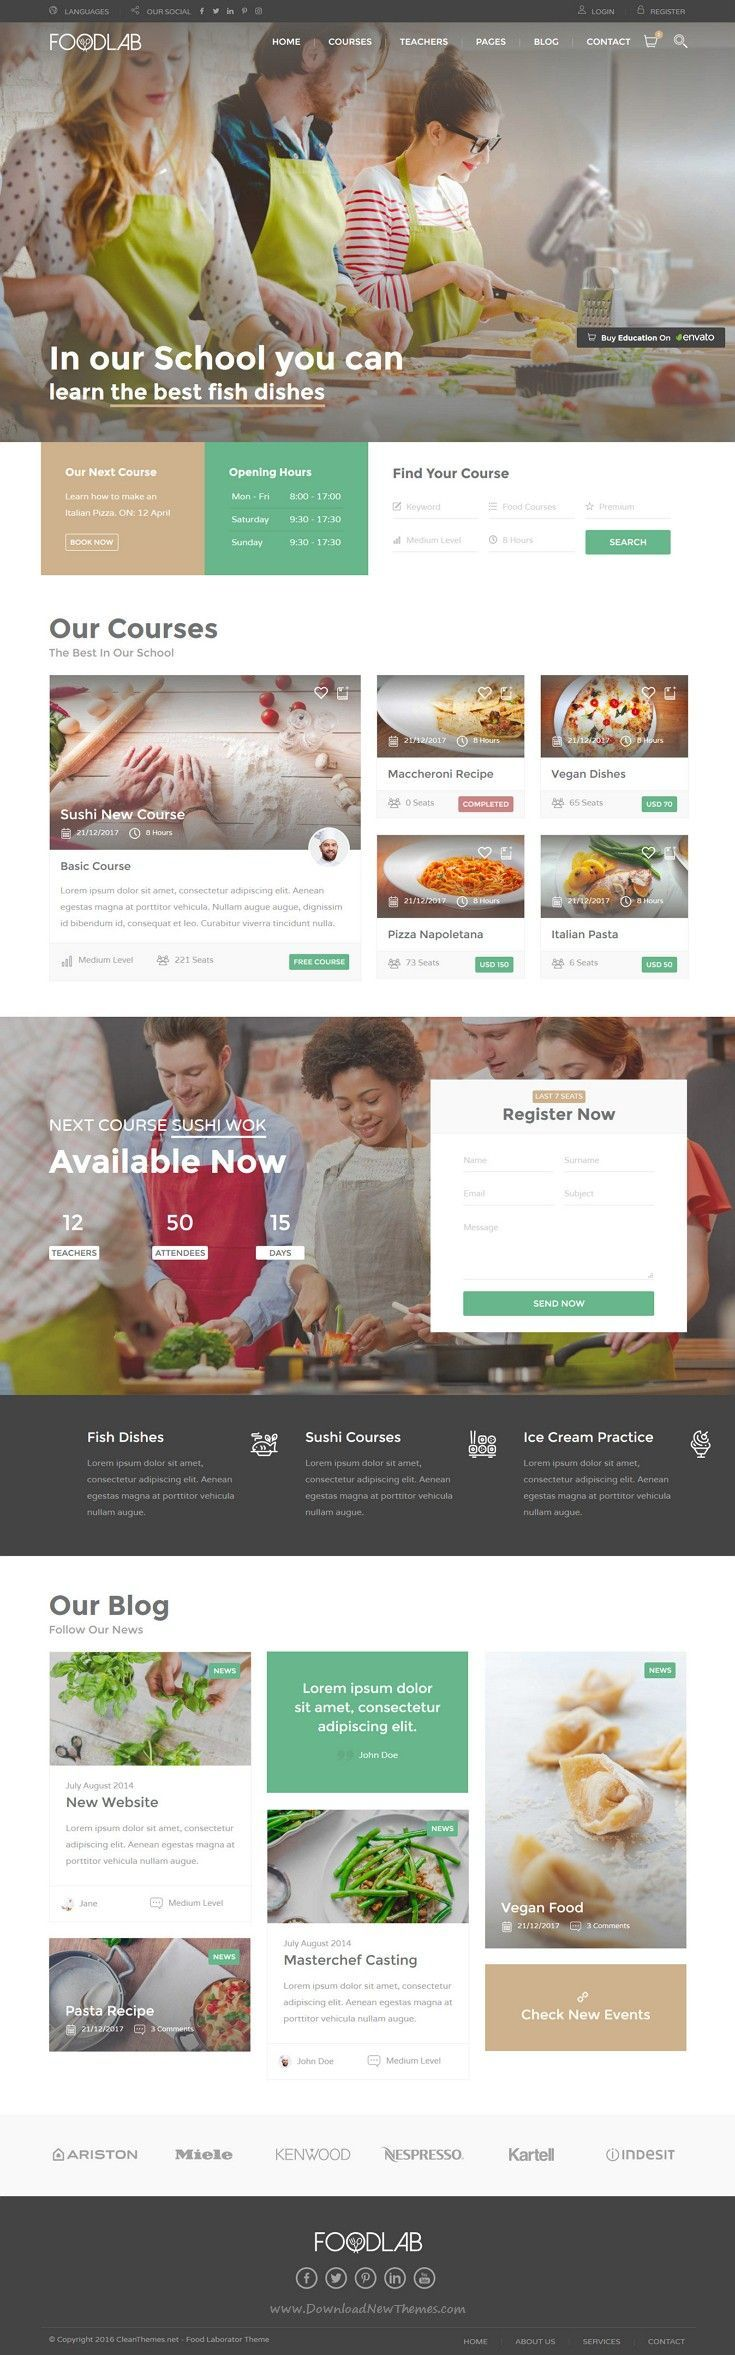 Education is excelent responsive HTML theme designed for schools that organize online courses and offer a complete e-leaning #education service #website. #food #hospitality Download Now!. If you're a user experience professional, listen to The UX Blog Podcast on iTunes.